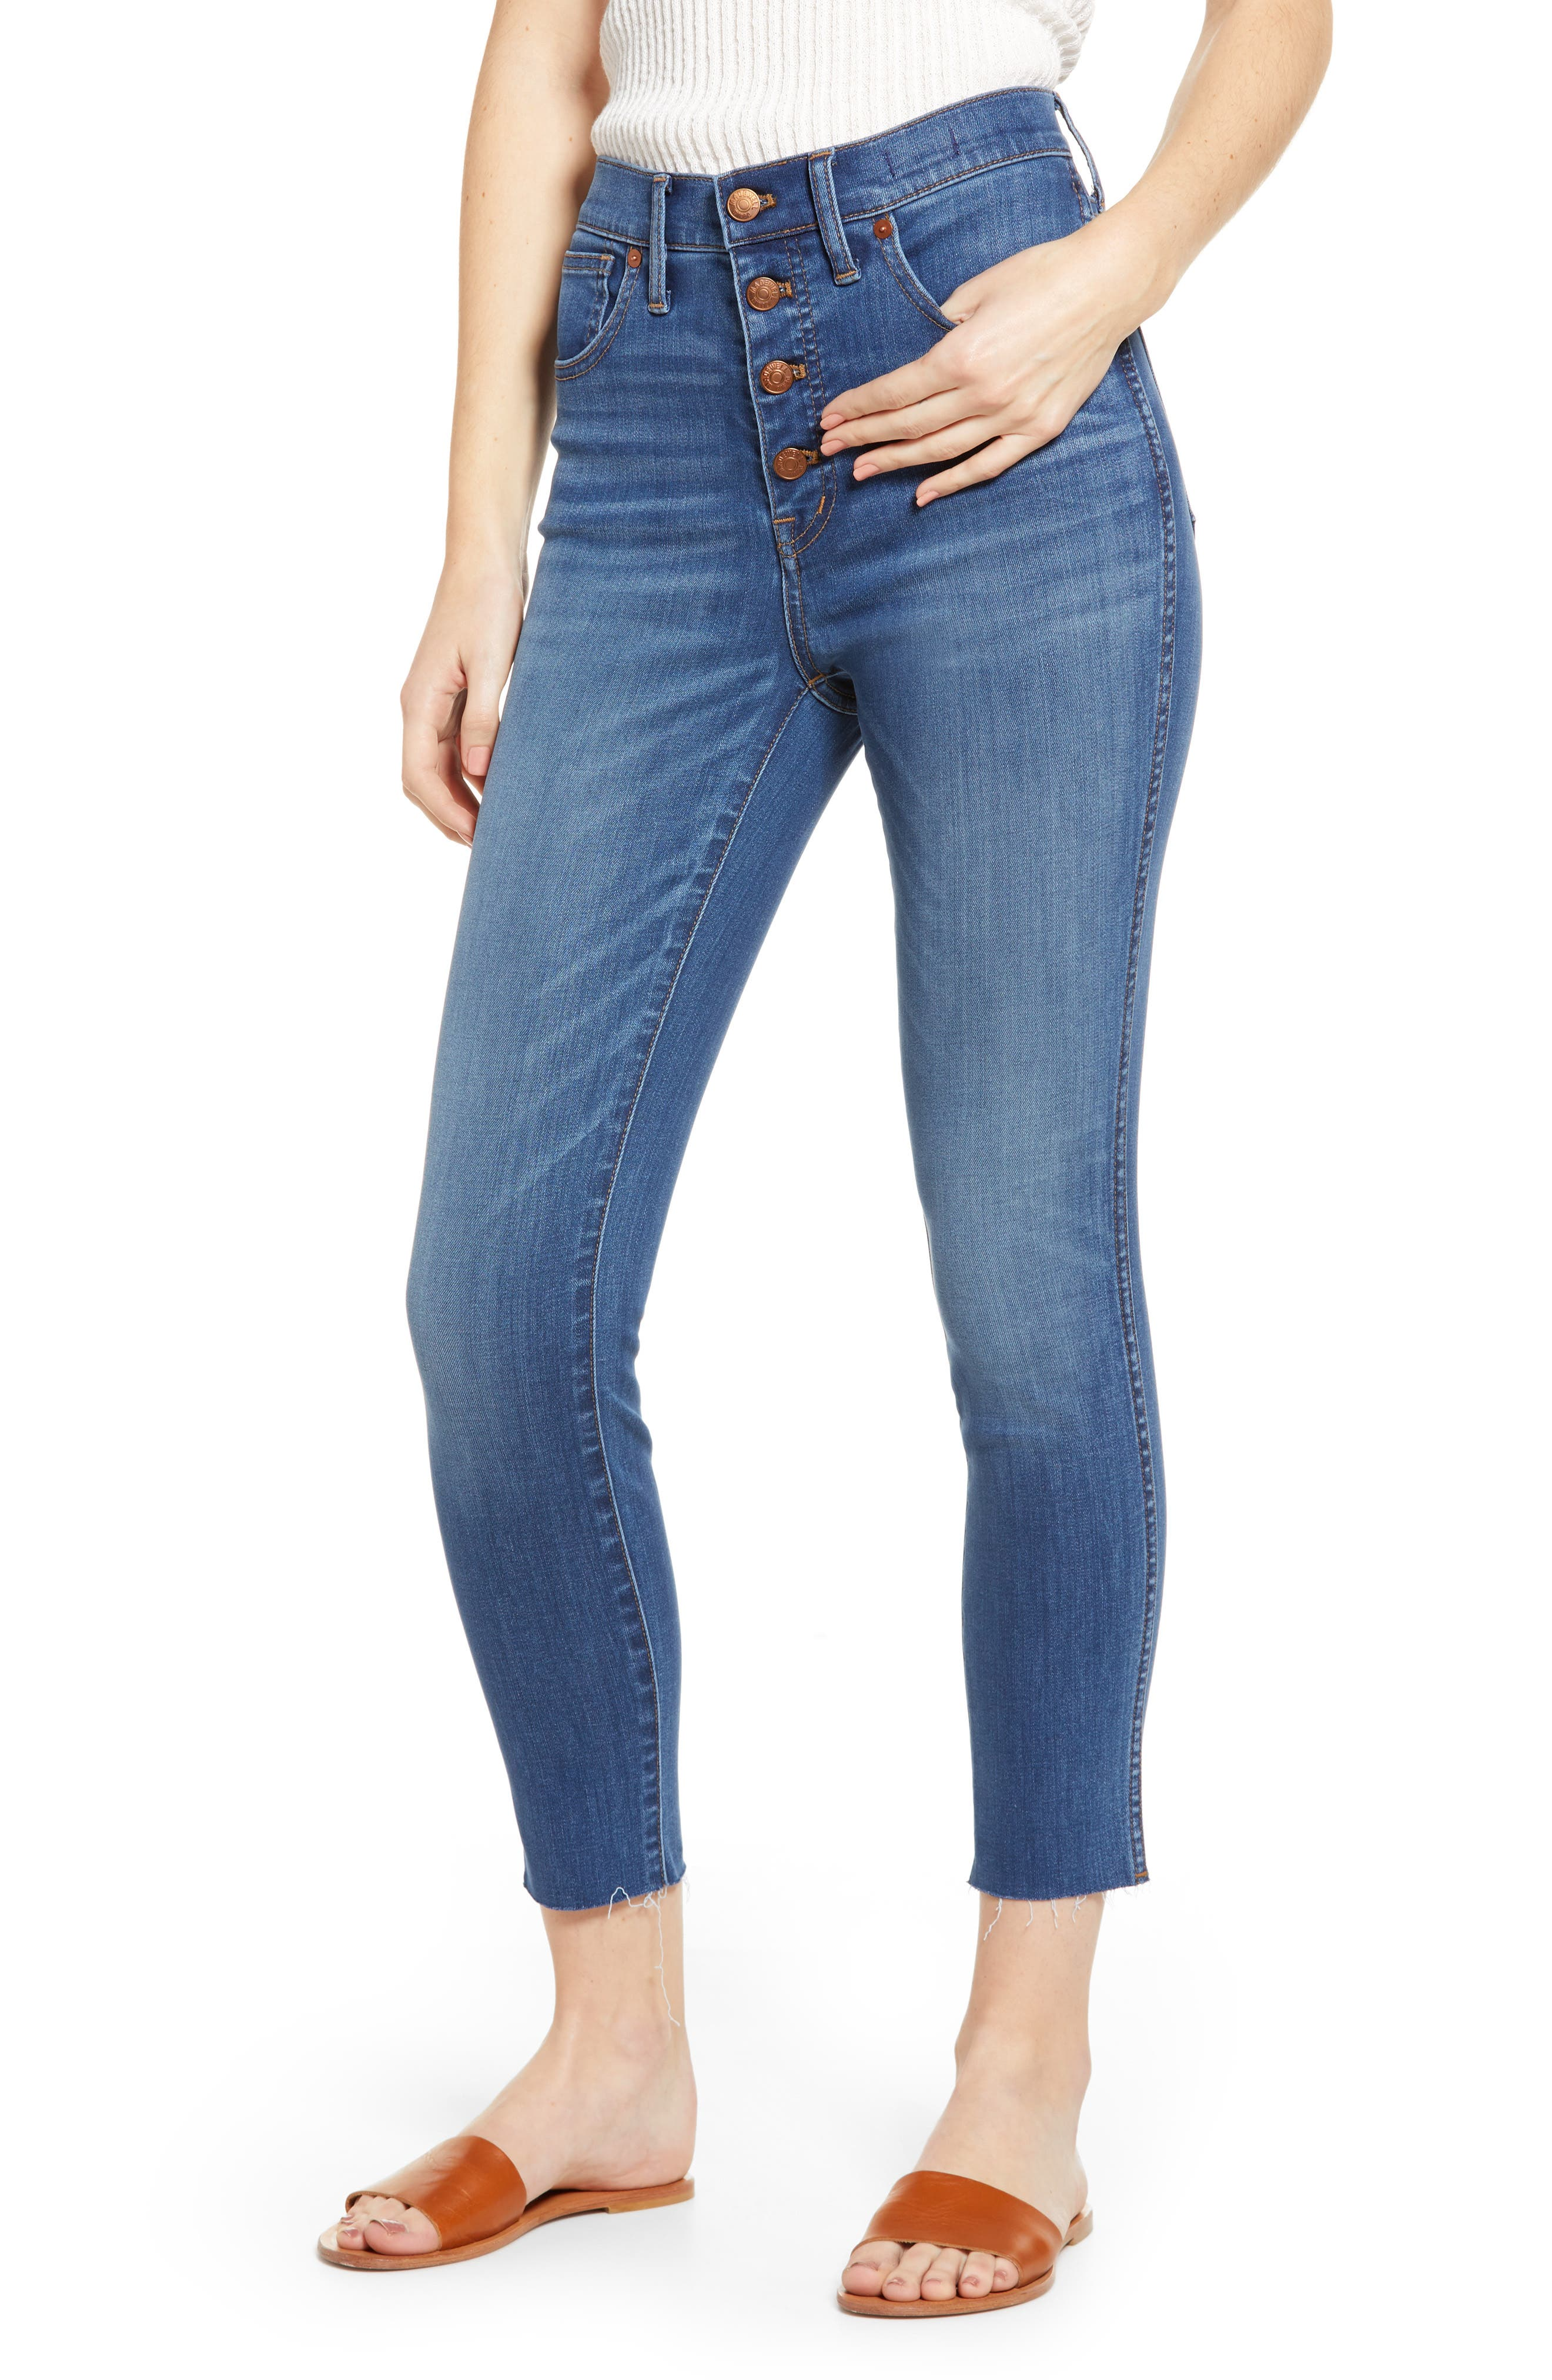 Madewell 10-Inch High Waist Button Front Crop Skinny Jeans (Hayden) (Regular & Plus Size)